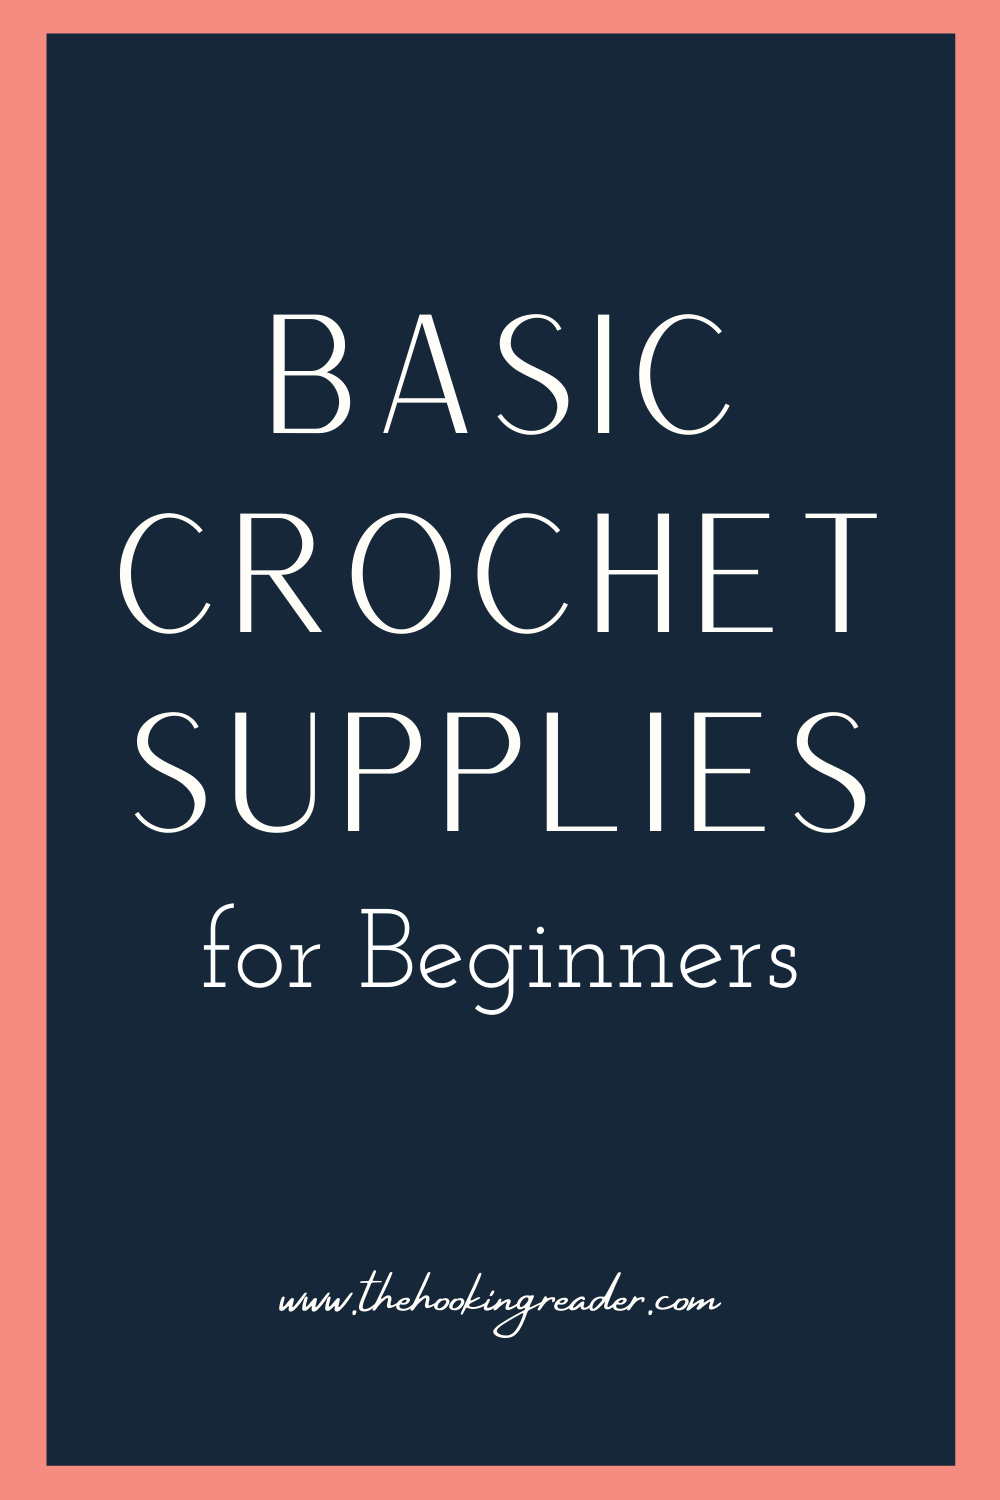 Basic Crochet Supplies for Beginners